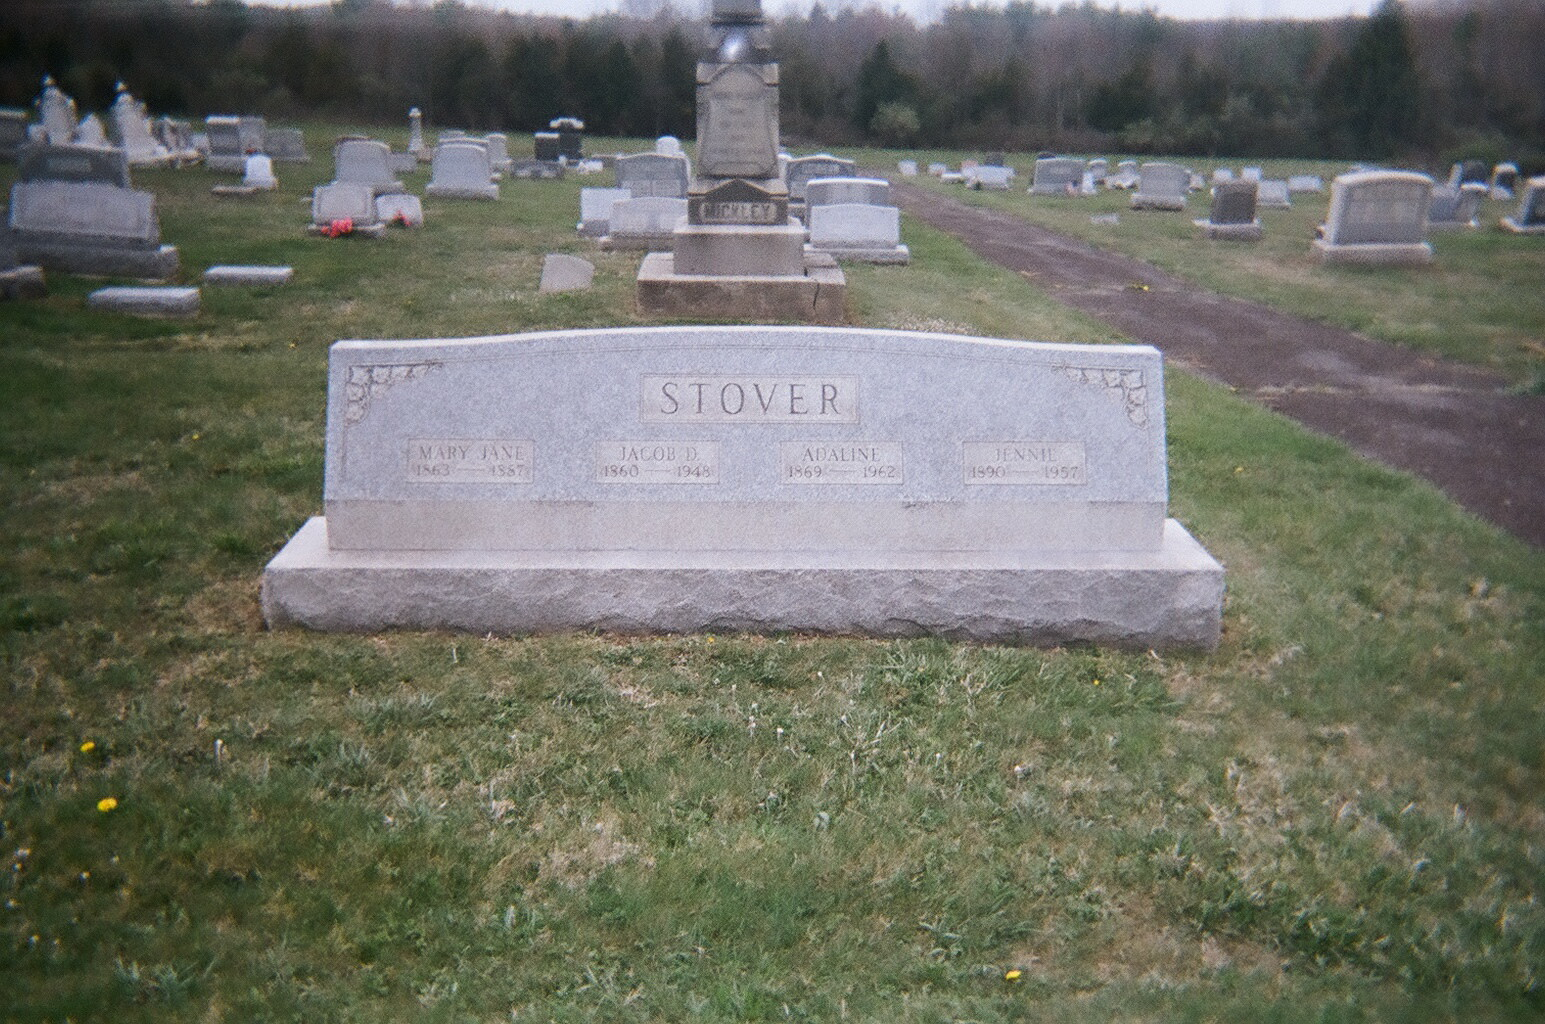 Jacob Price Stover